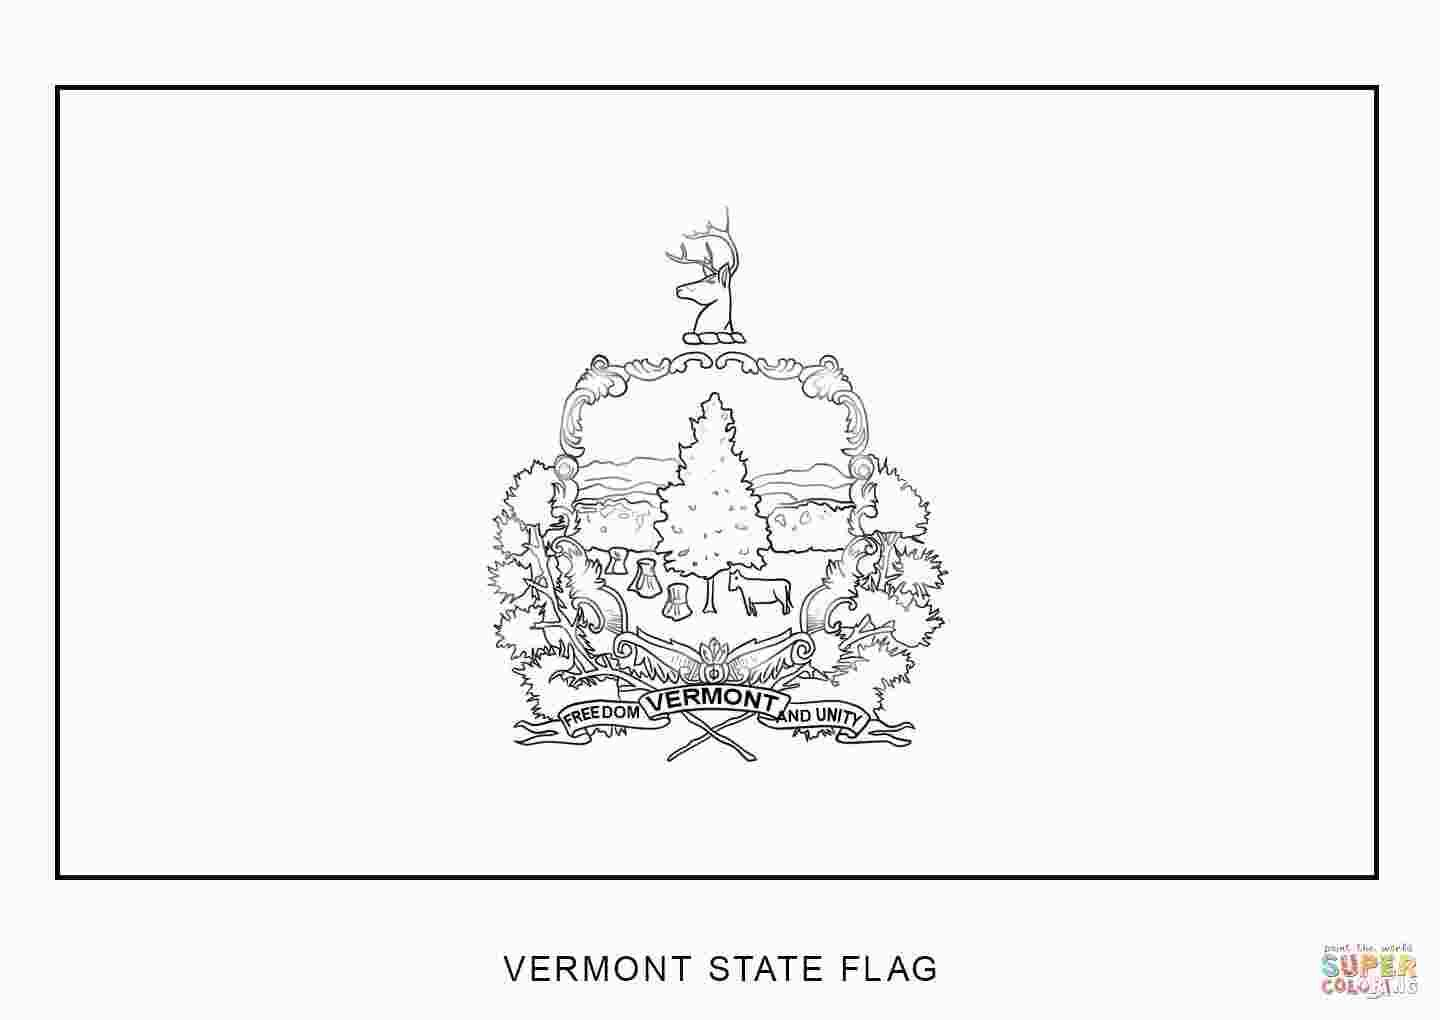 Vermont State Flag Coloring Page Flag Coloring Pages Coloring